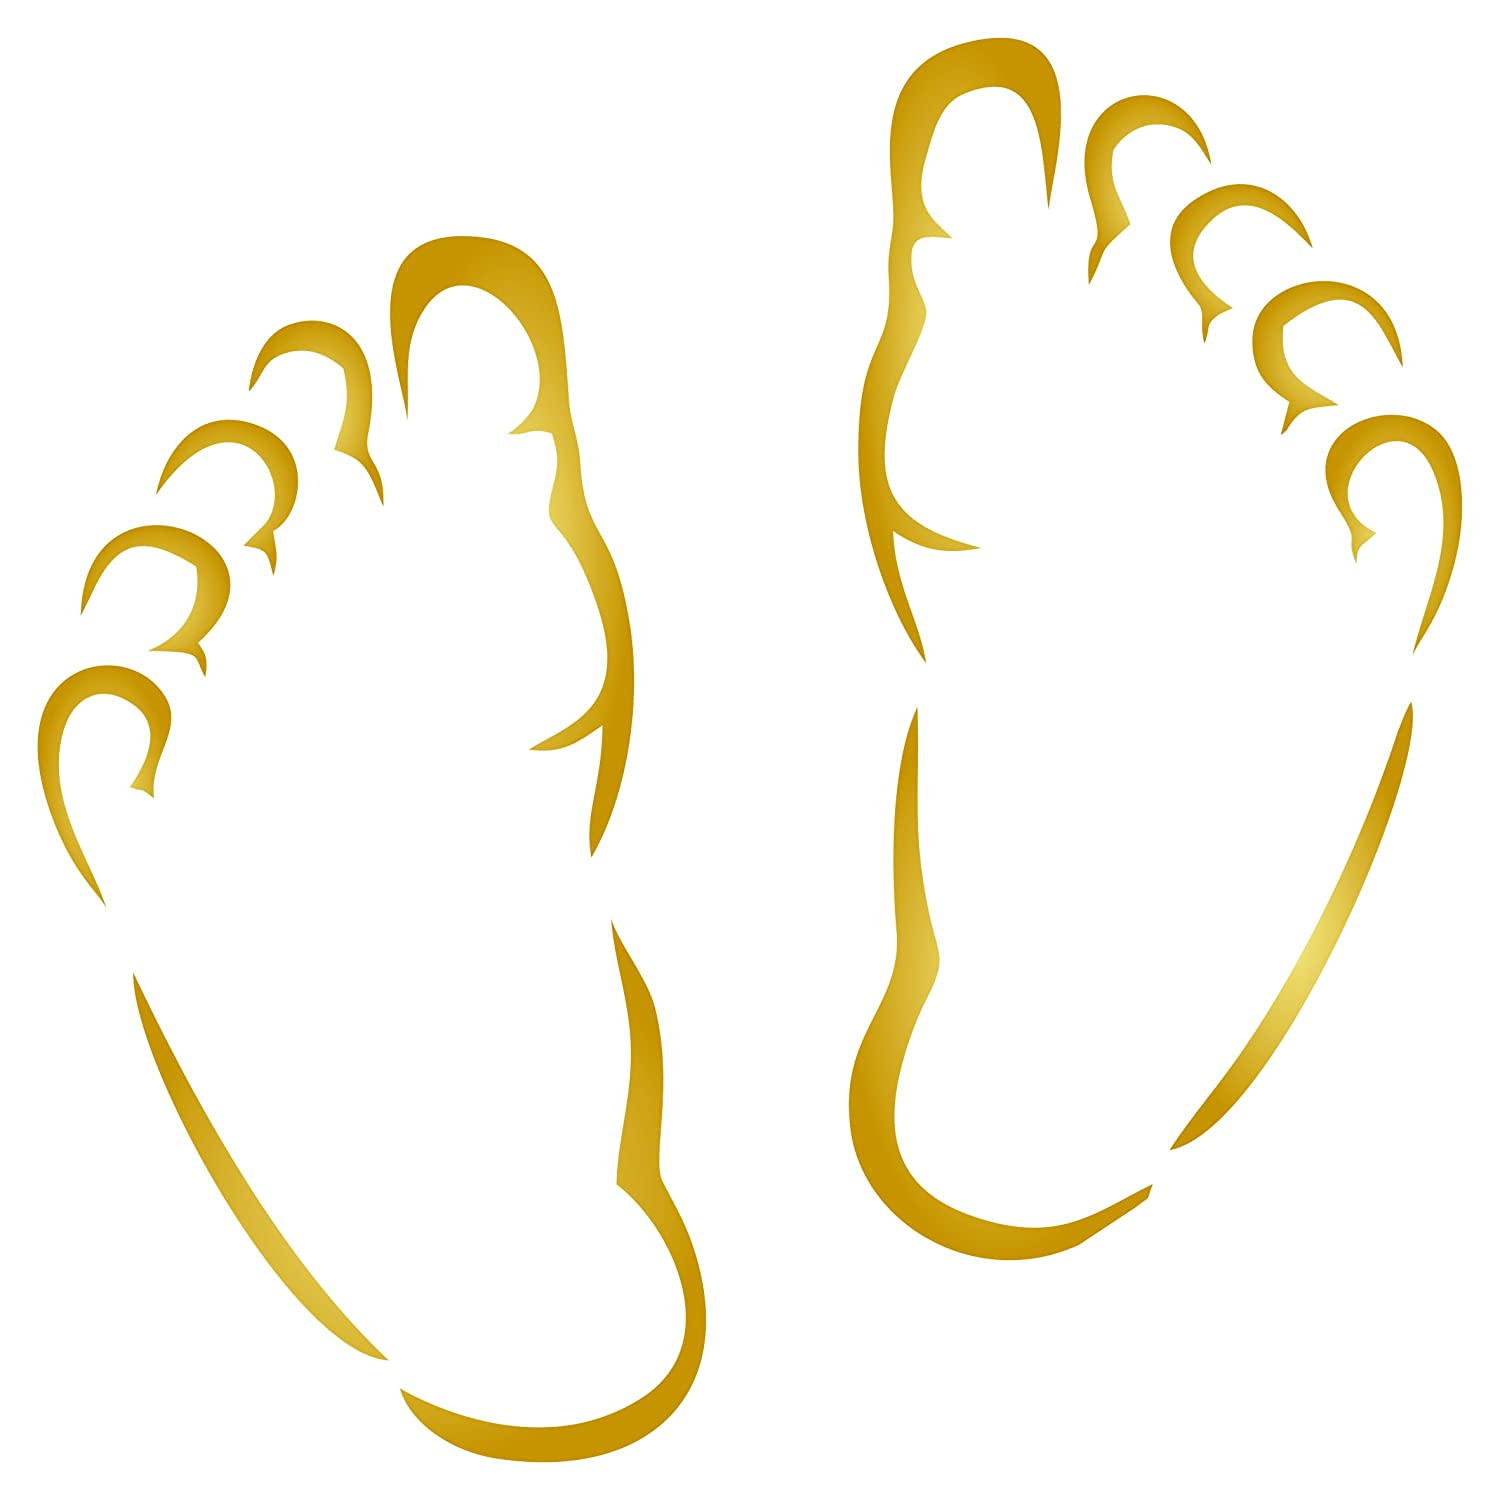 Baby Feet Stencil - 6.5 x 6.5 inch (L) - Reusable New Born Babies Child Boy Girl Wall Stencils for Painting - Use on Paper Projects Walls Floors Fabric Furniture Glass Wood etc.